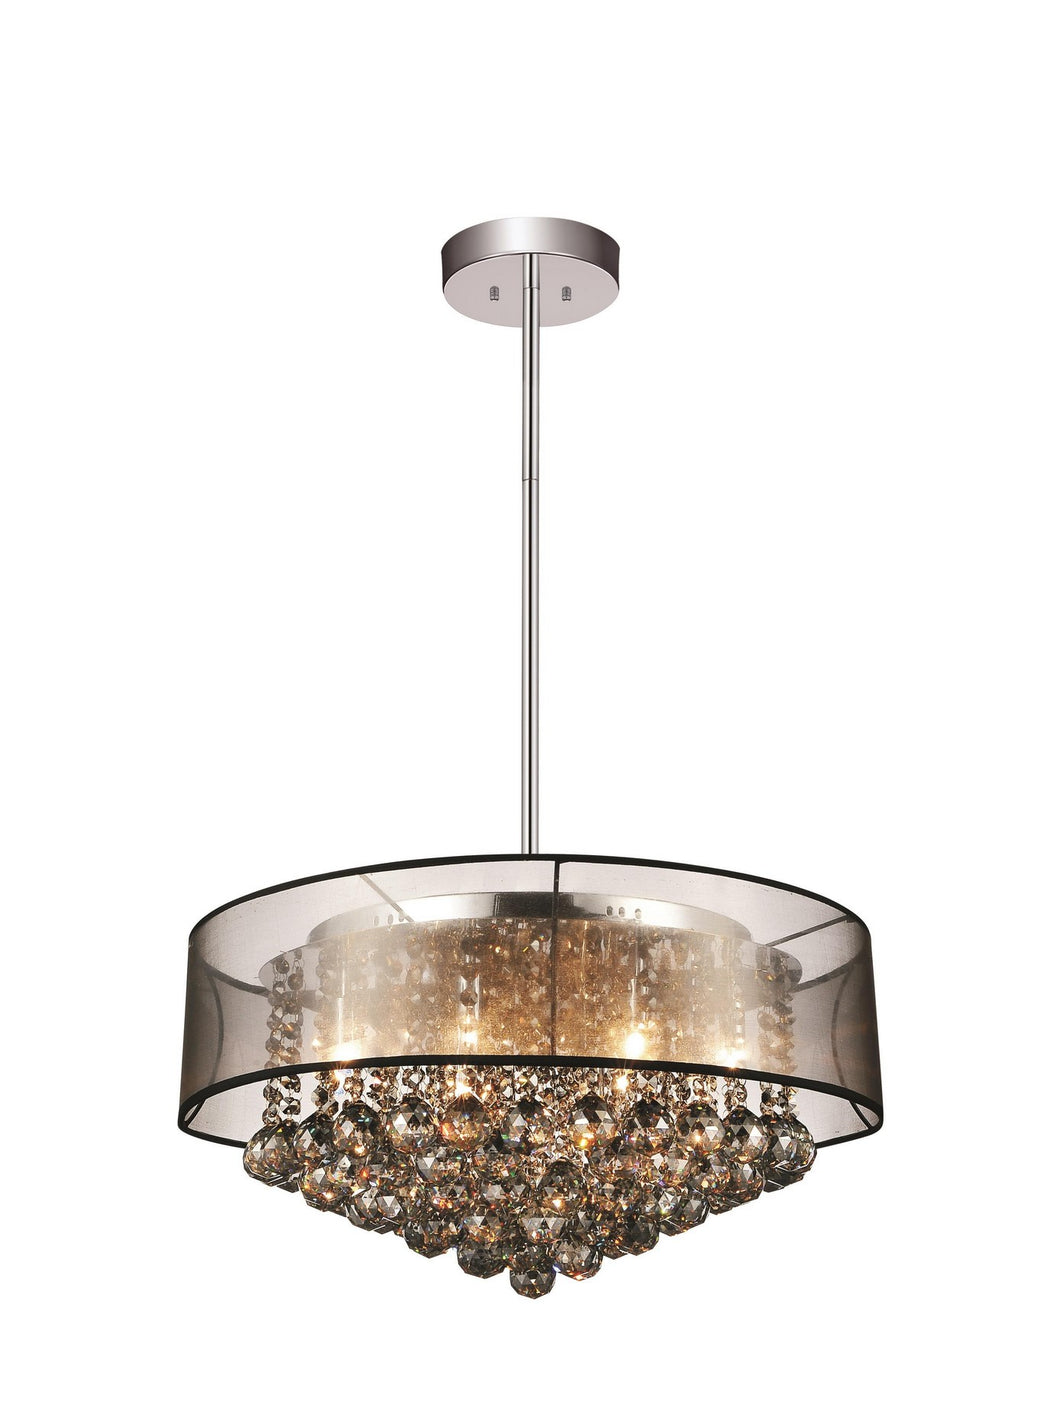 9 LIGHT DRUM SHADE CHANDELIER WITH CHROME FINISH - Dream art Gallery